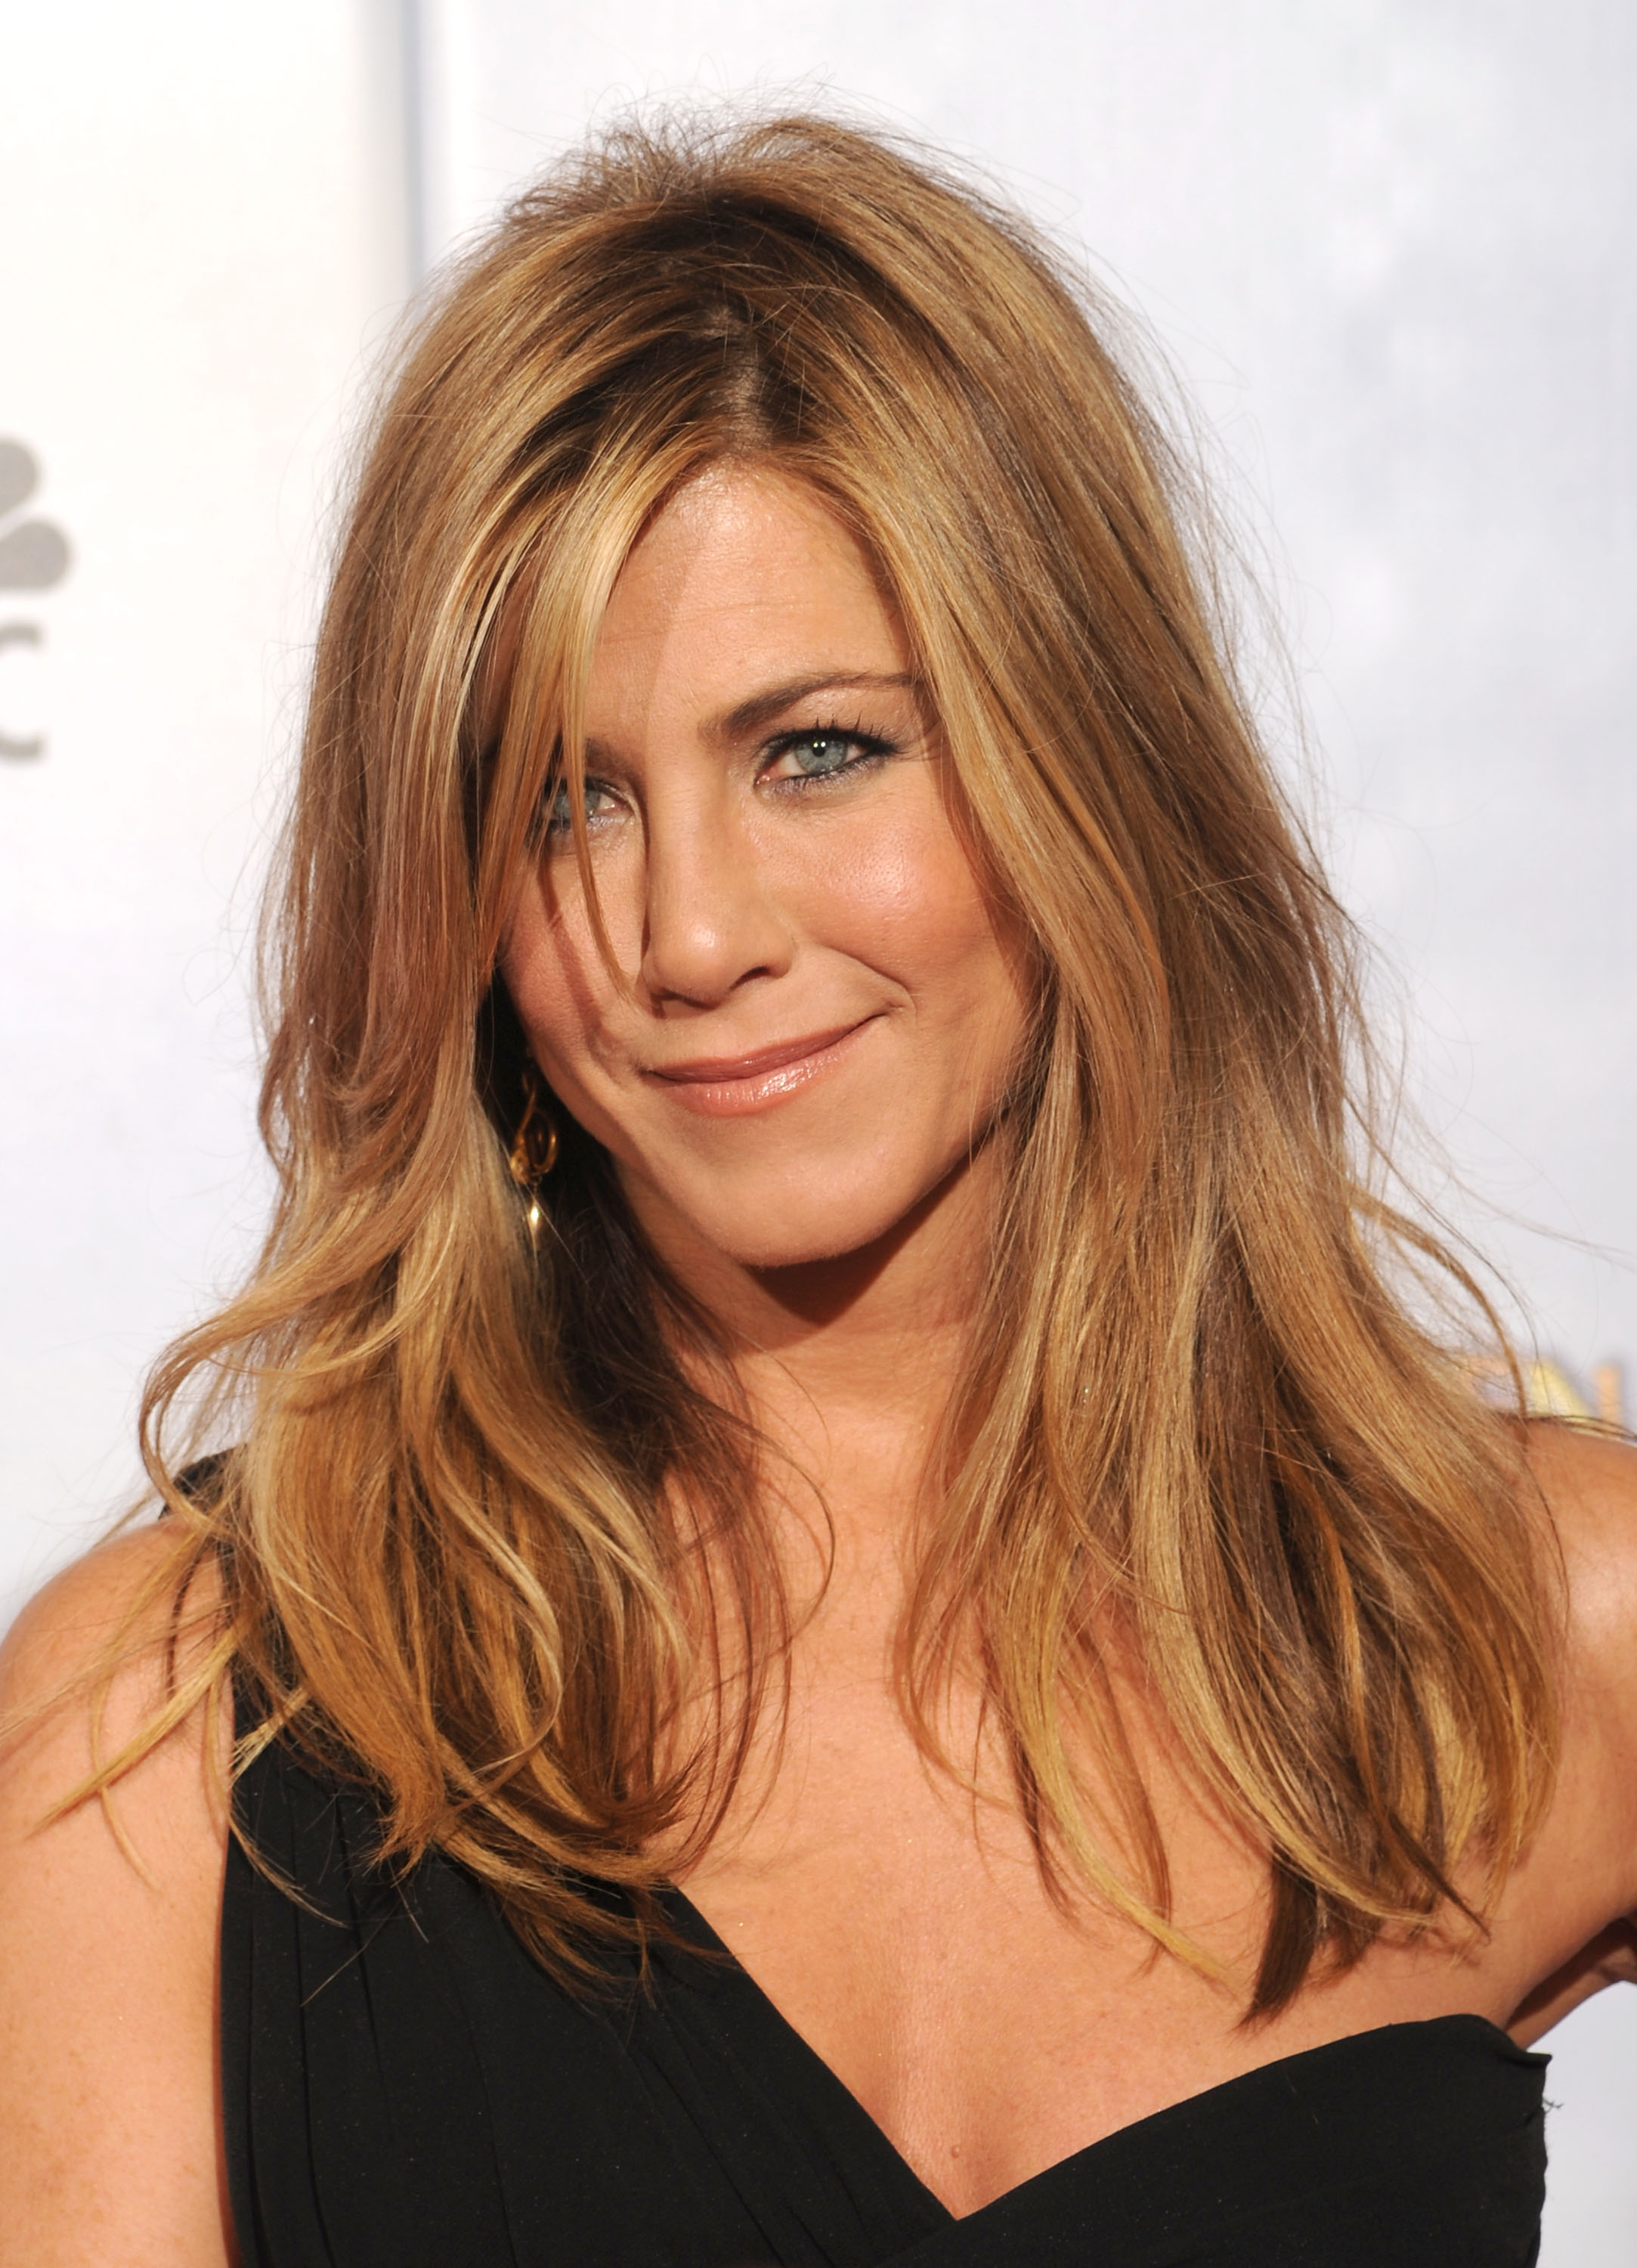 jennifer aniston pictures gallery 13 film actresses. Black Bedroom Furniture Sets. Home Design Ideas